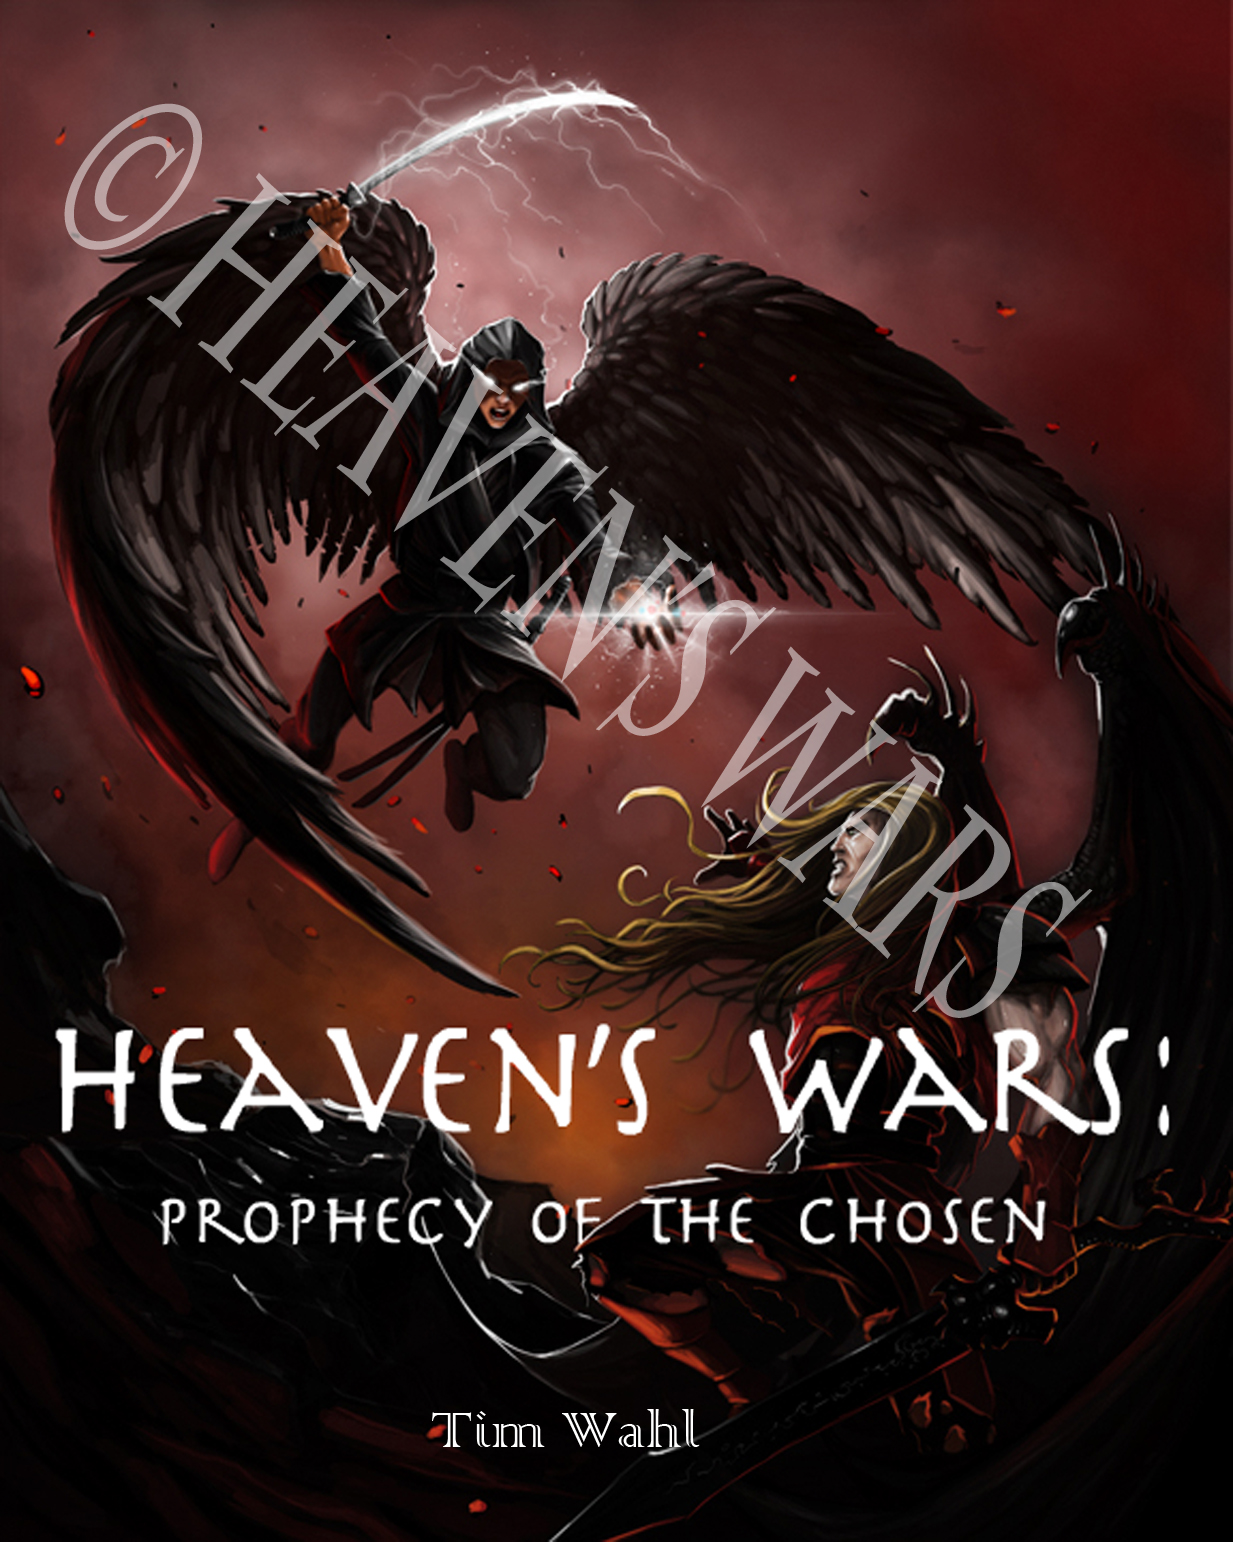 Heaven's Wars: Prophecy of the Chosen